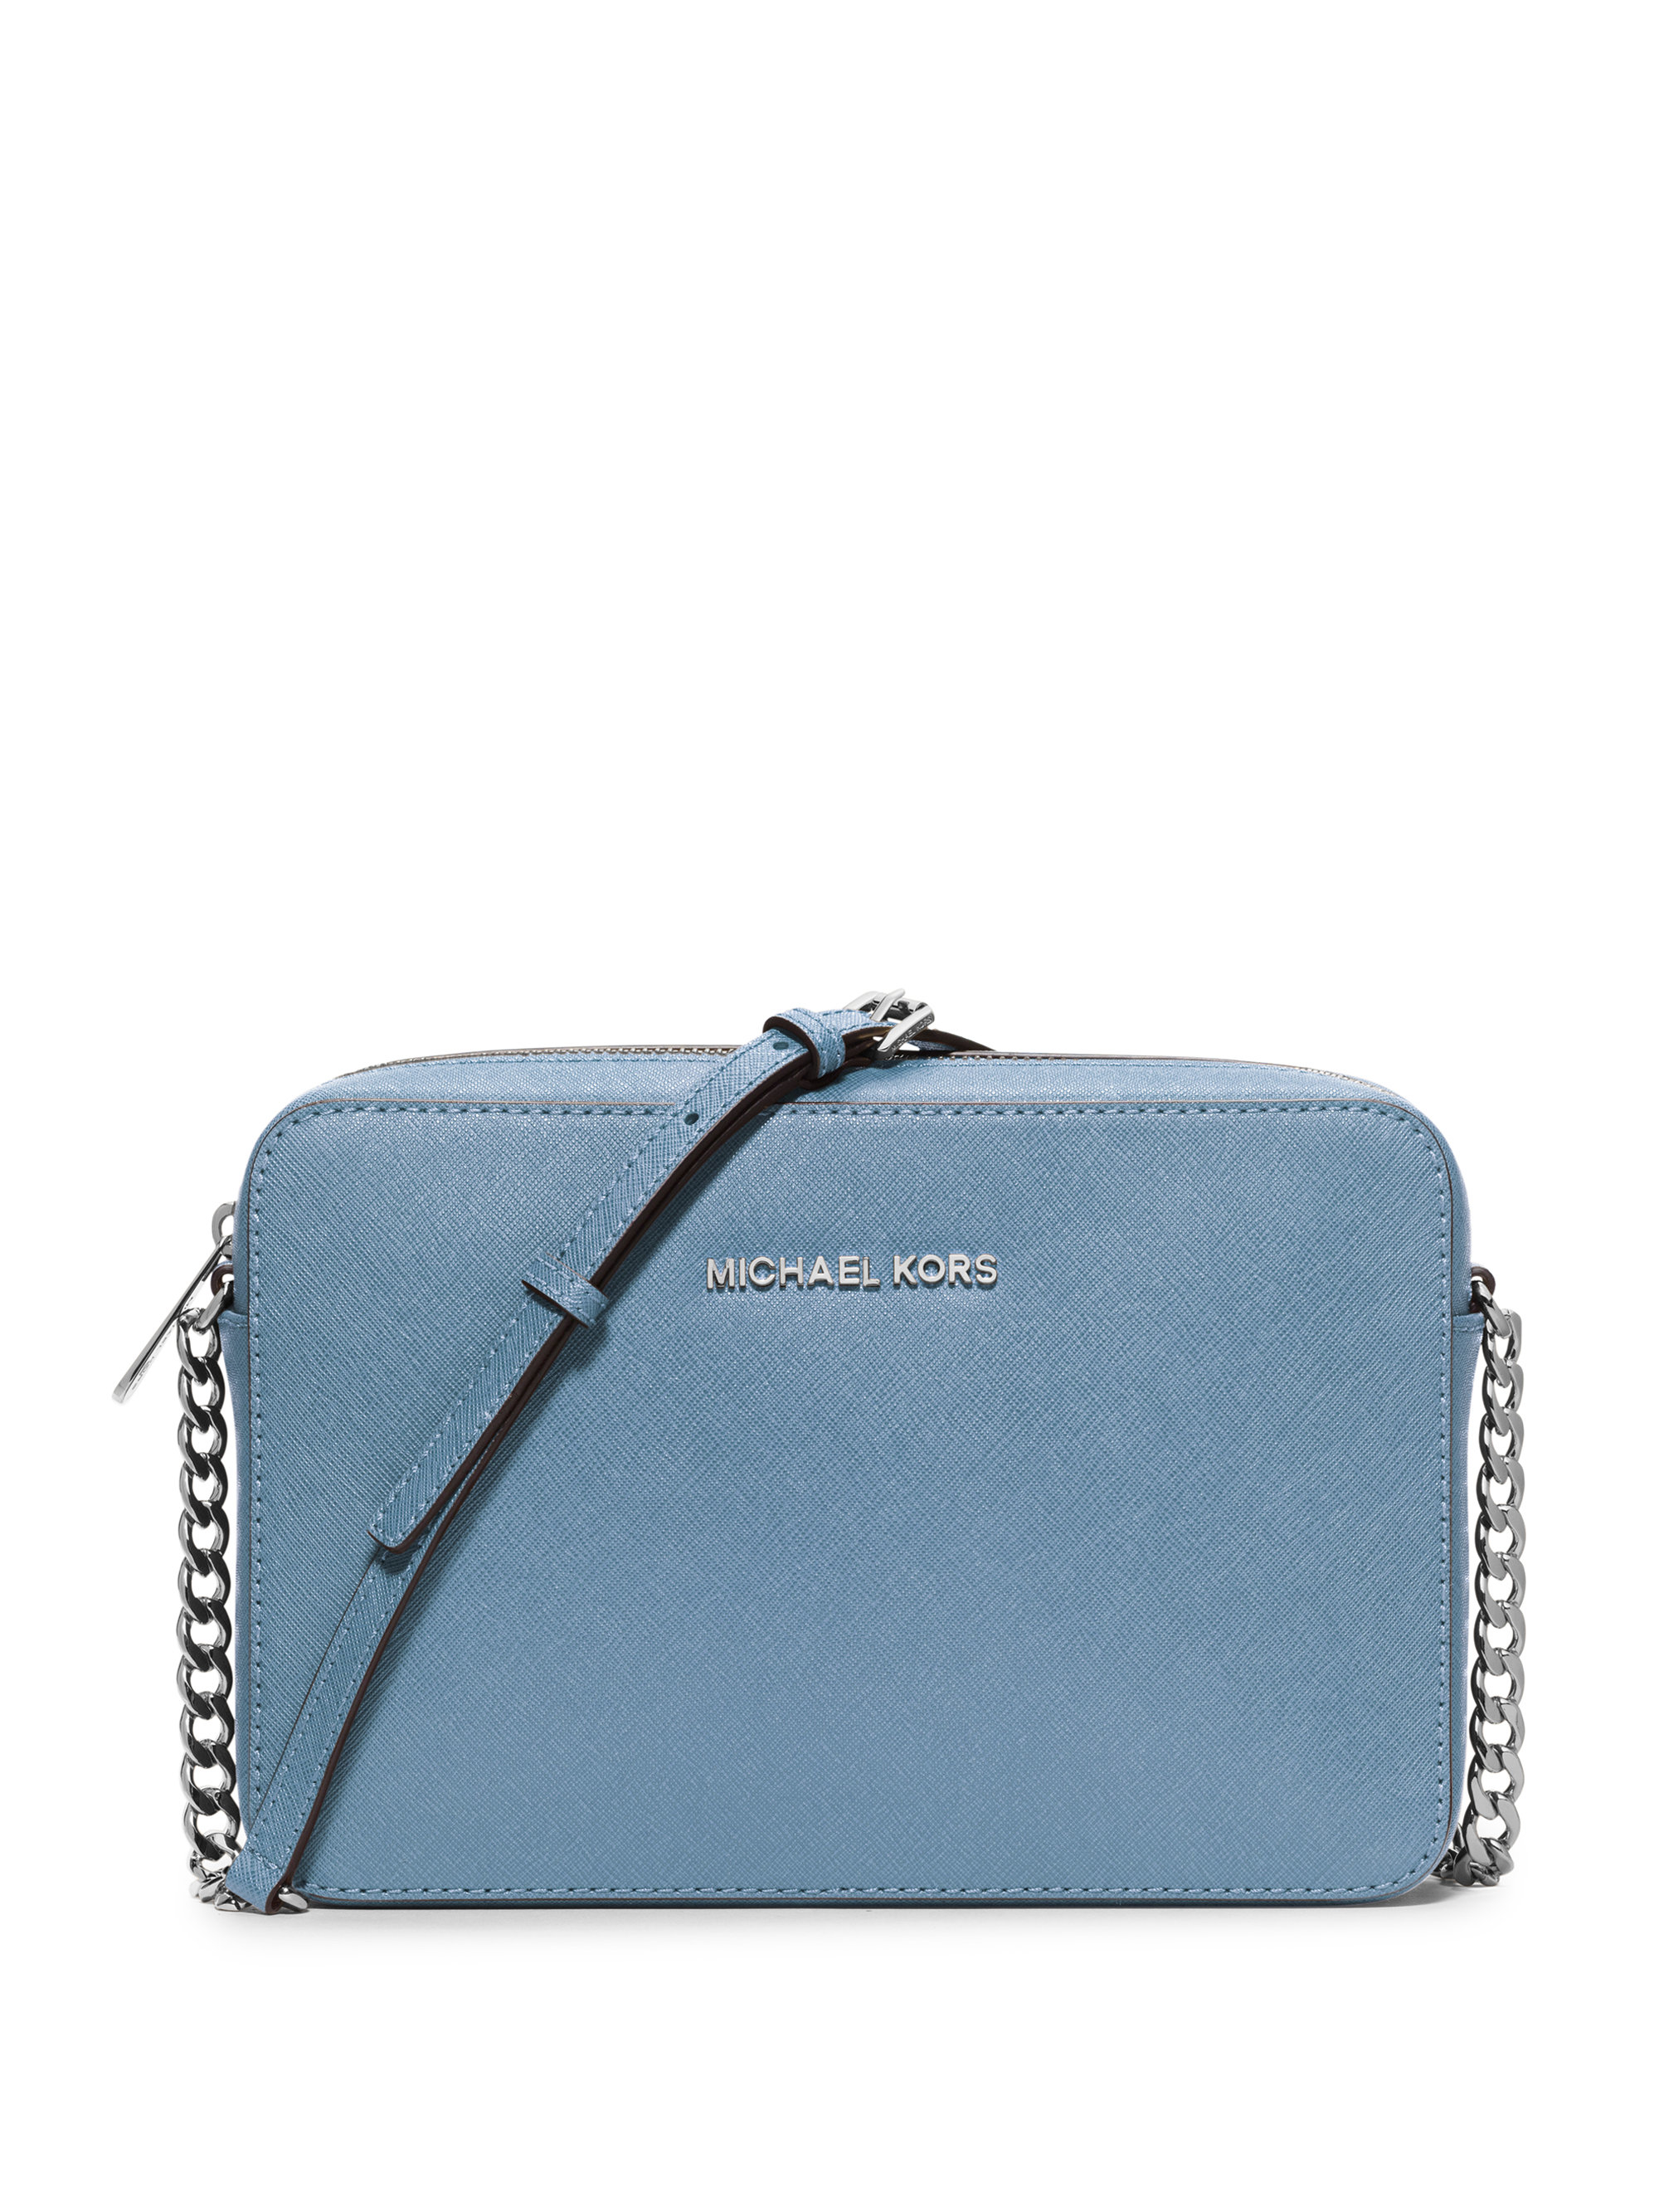 3062d1780834 Michael Kors Jet Set Travel Large Leather Cross-Body Bag in Blue - Lyst